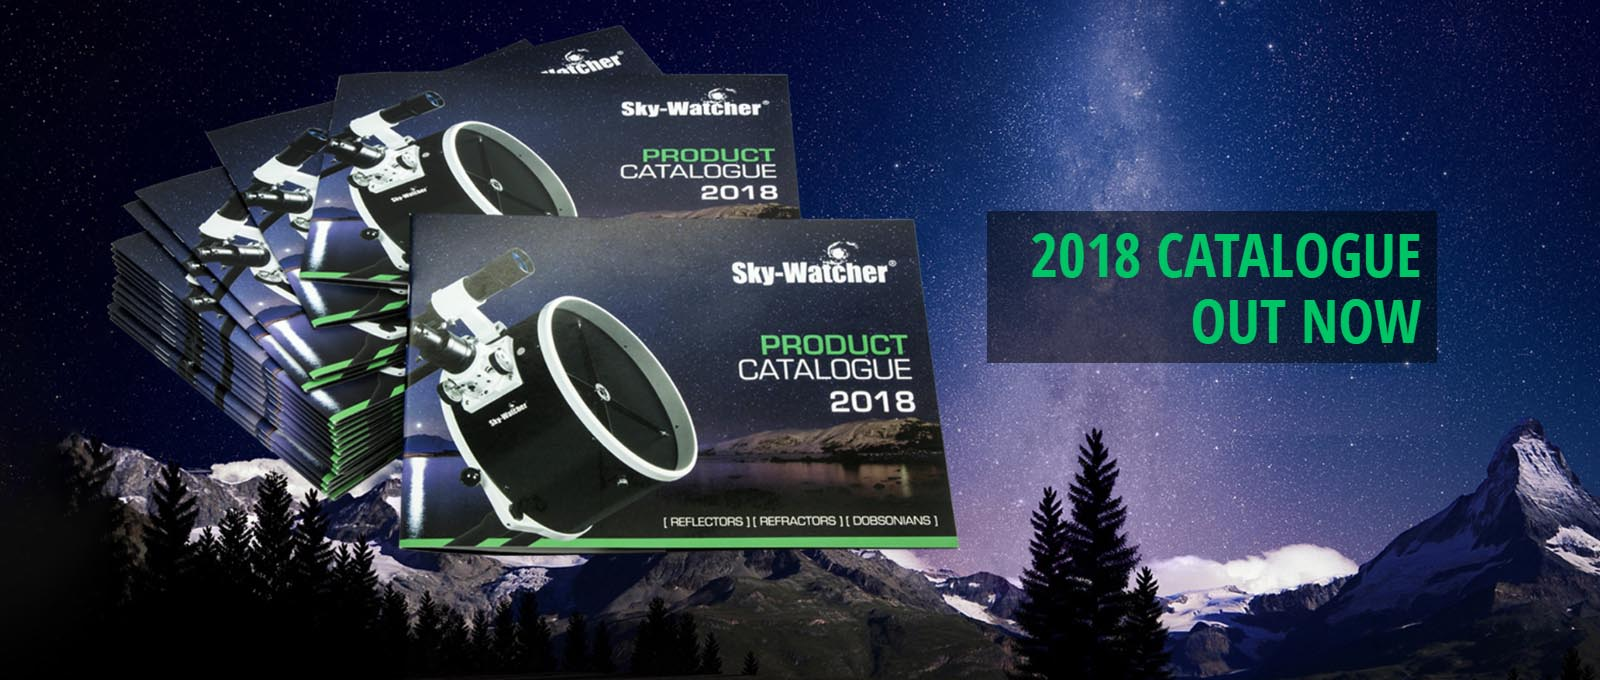 Sky-Watcher Catalogue